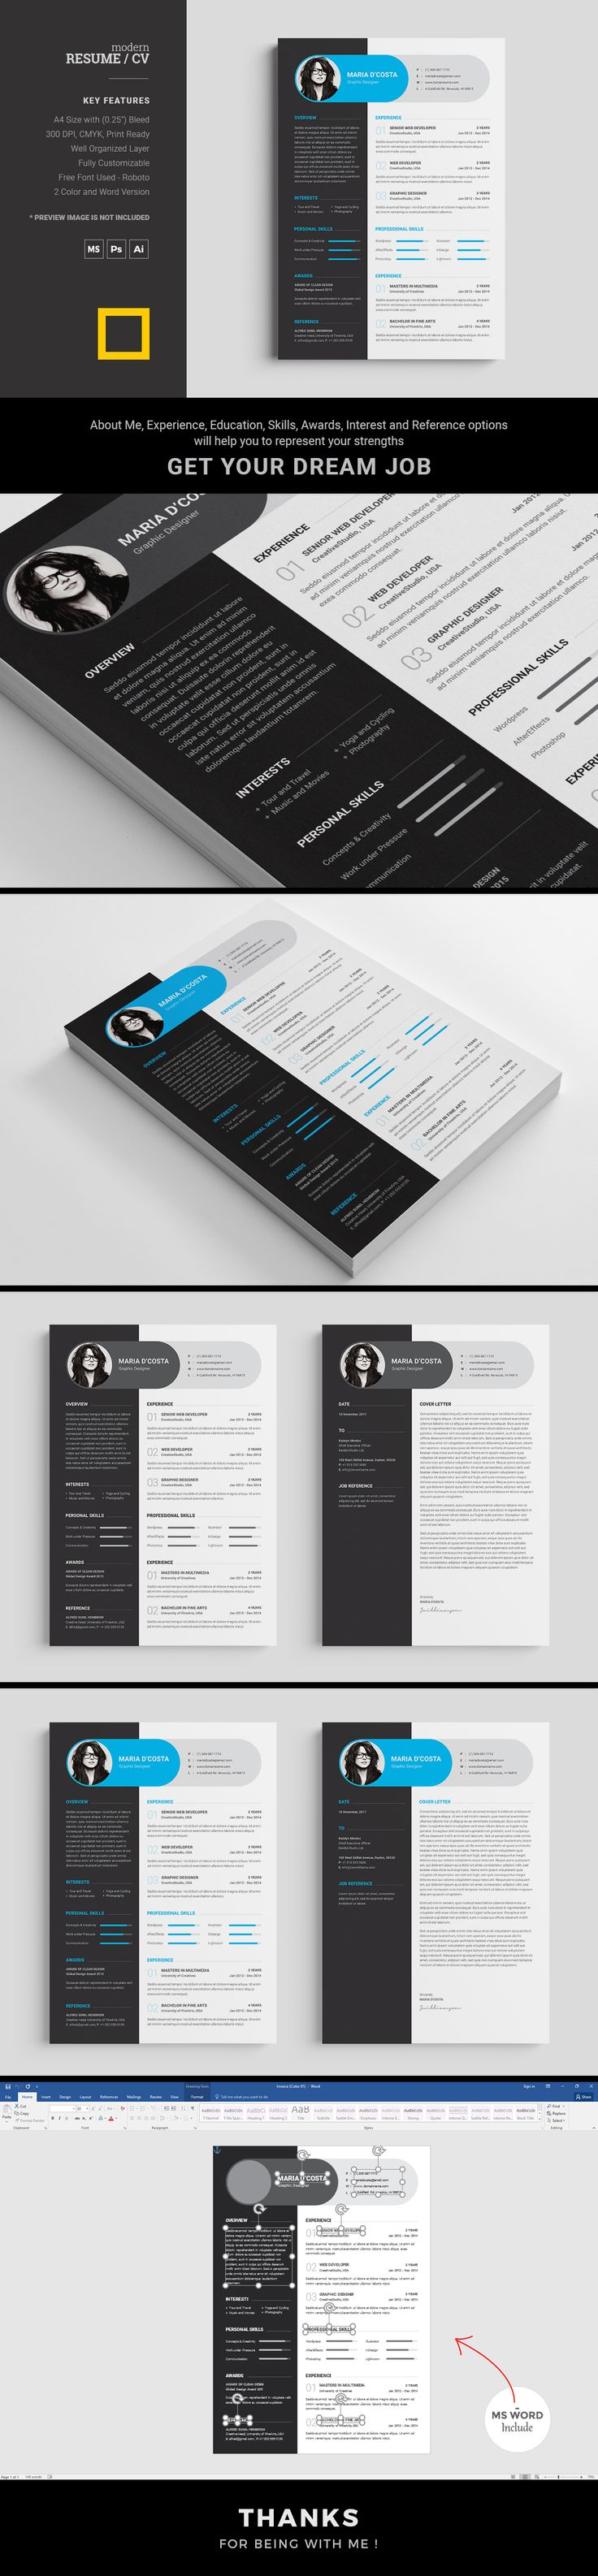 Resume / CV template with very much modern and clean look. This minimal resume will help you to express your all the strengths in a creative way. This simple resume template you can use in any personal or corporate purpose. This CV template will provide you Photoshop, Illustrator and Popular MS Word versions for your easy customization.